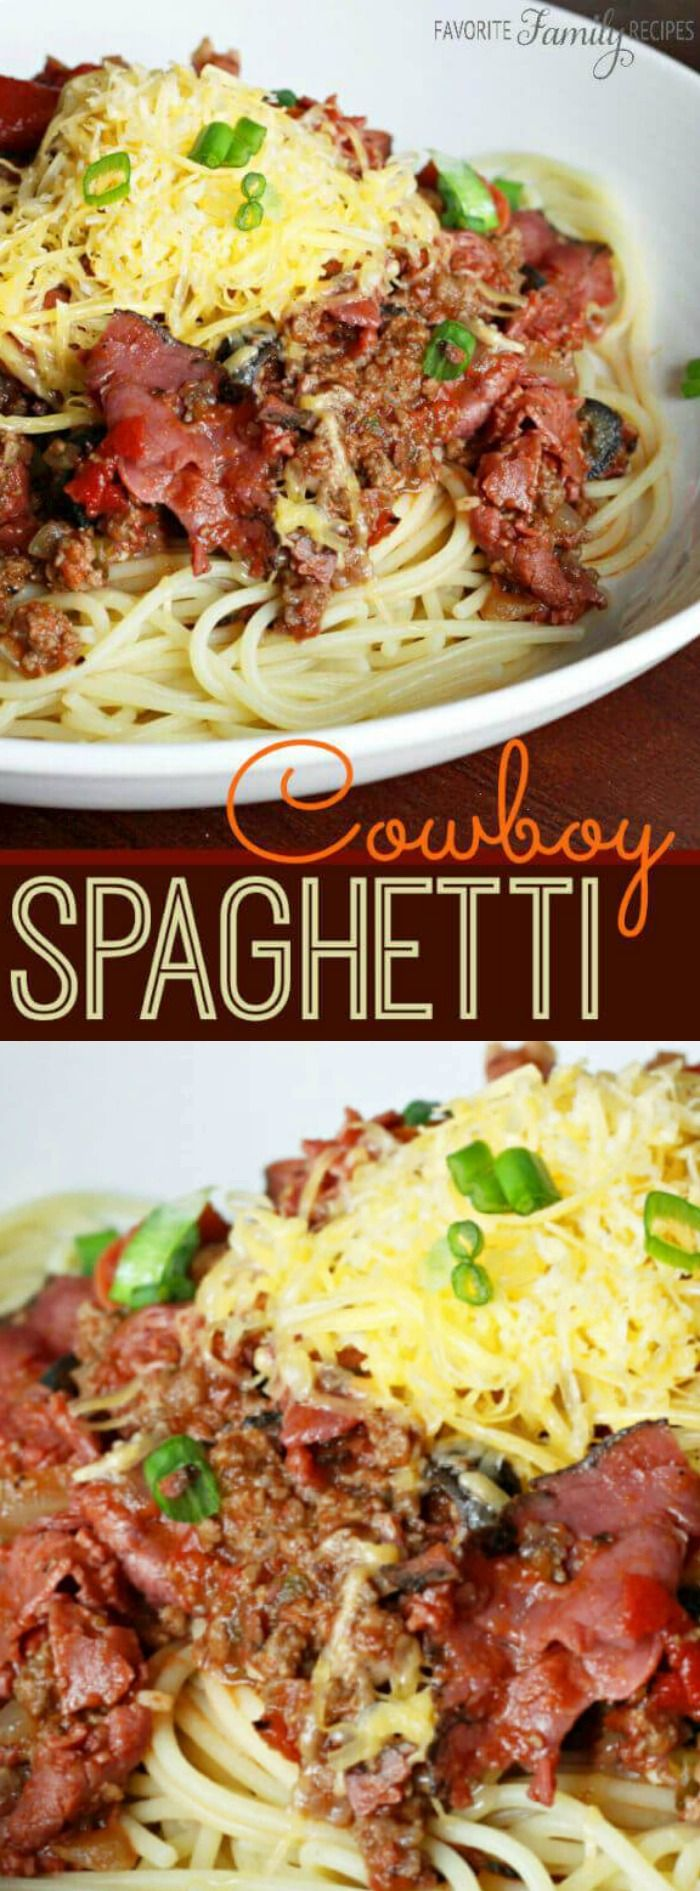 This Cowboy Spaghetti from Favorite Family Recipes is so incredible flavorful and tasty! It makes the perfect hearty dinner that your family, and especially your husband will really love.